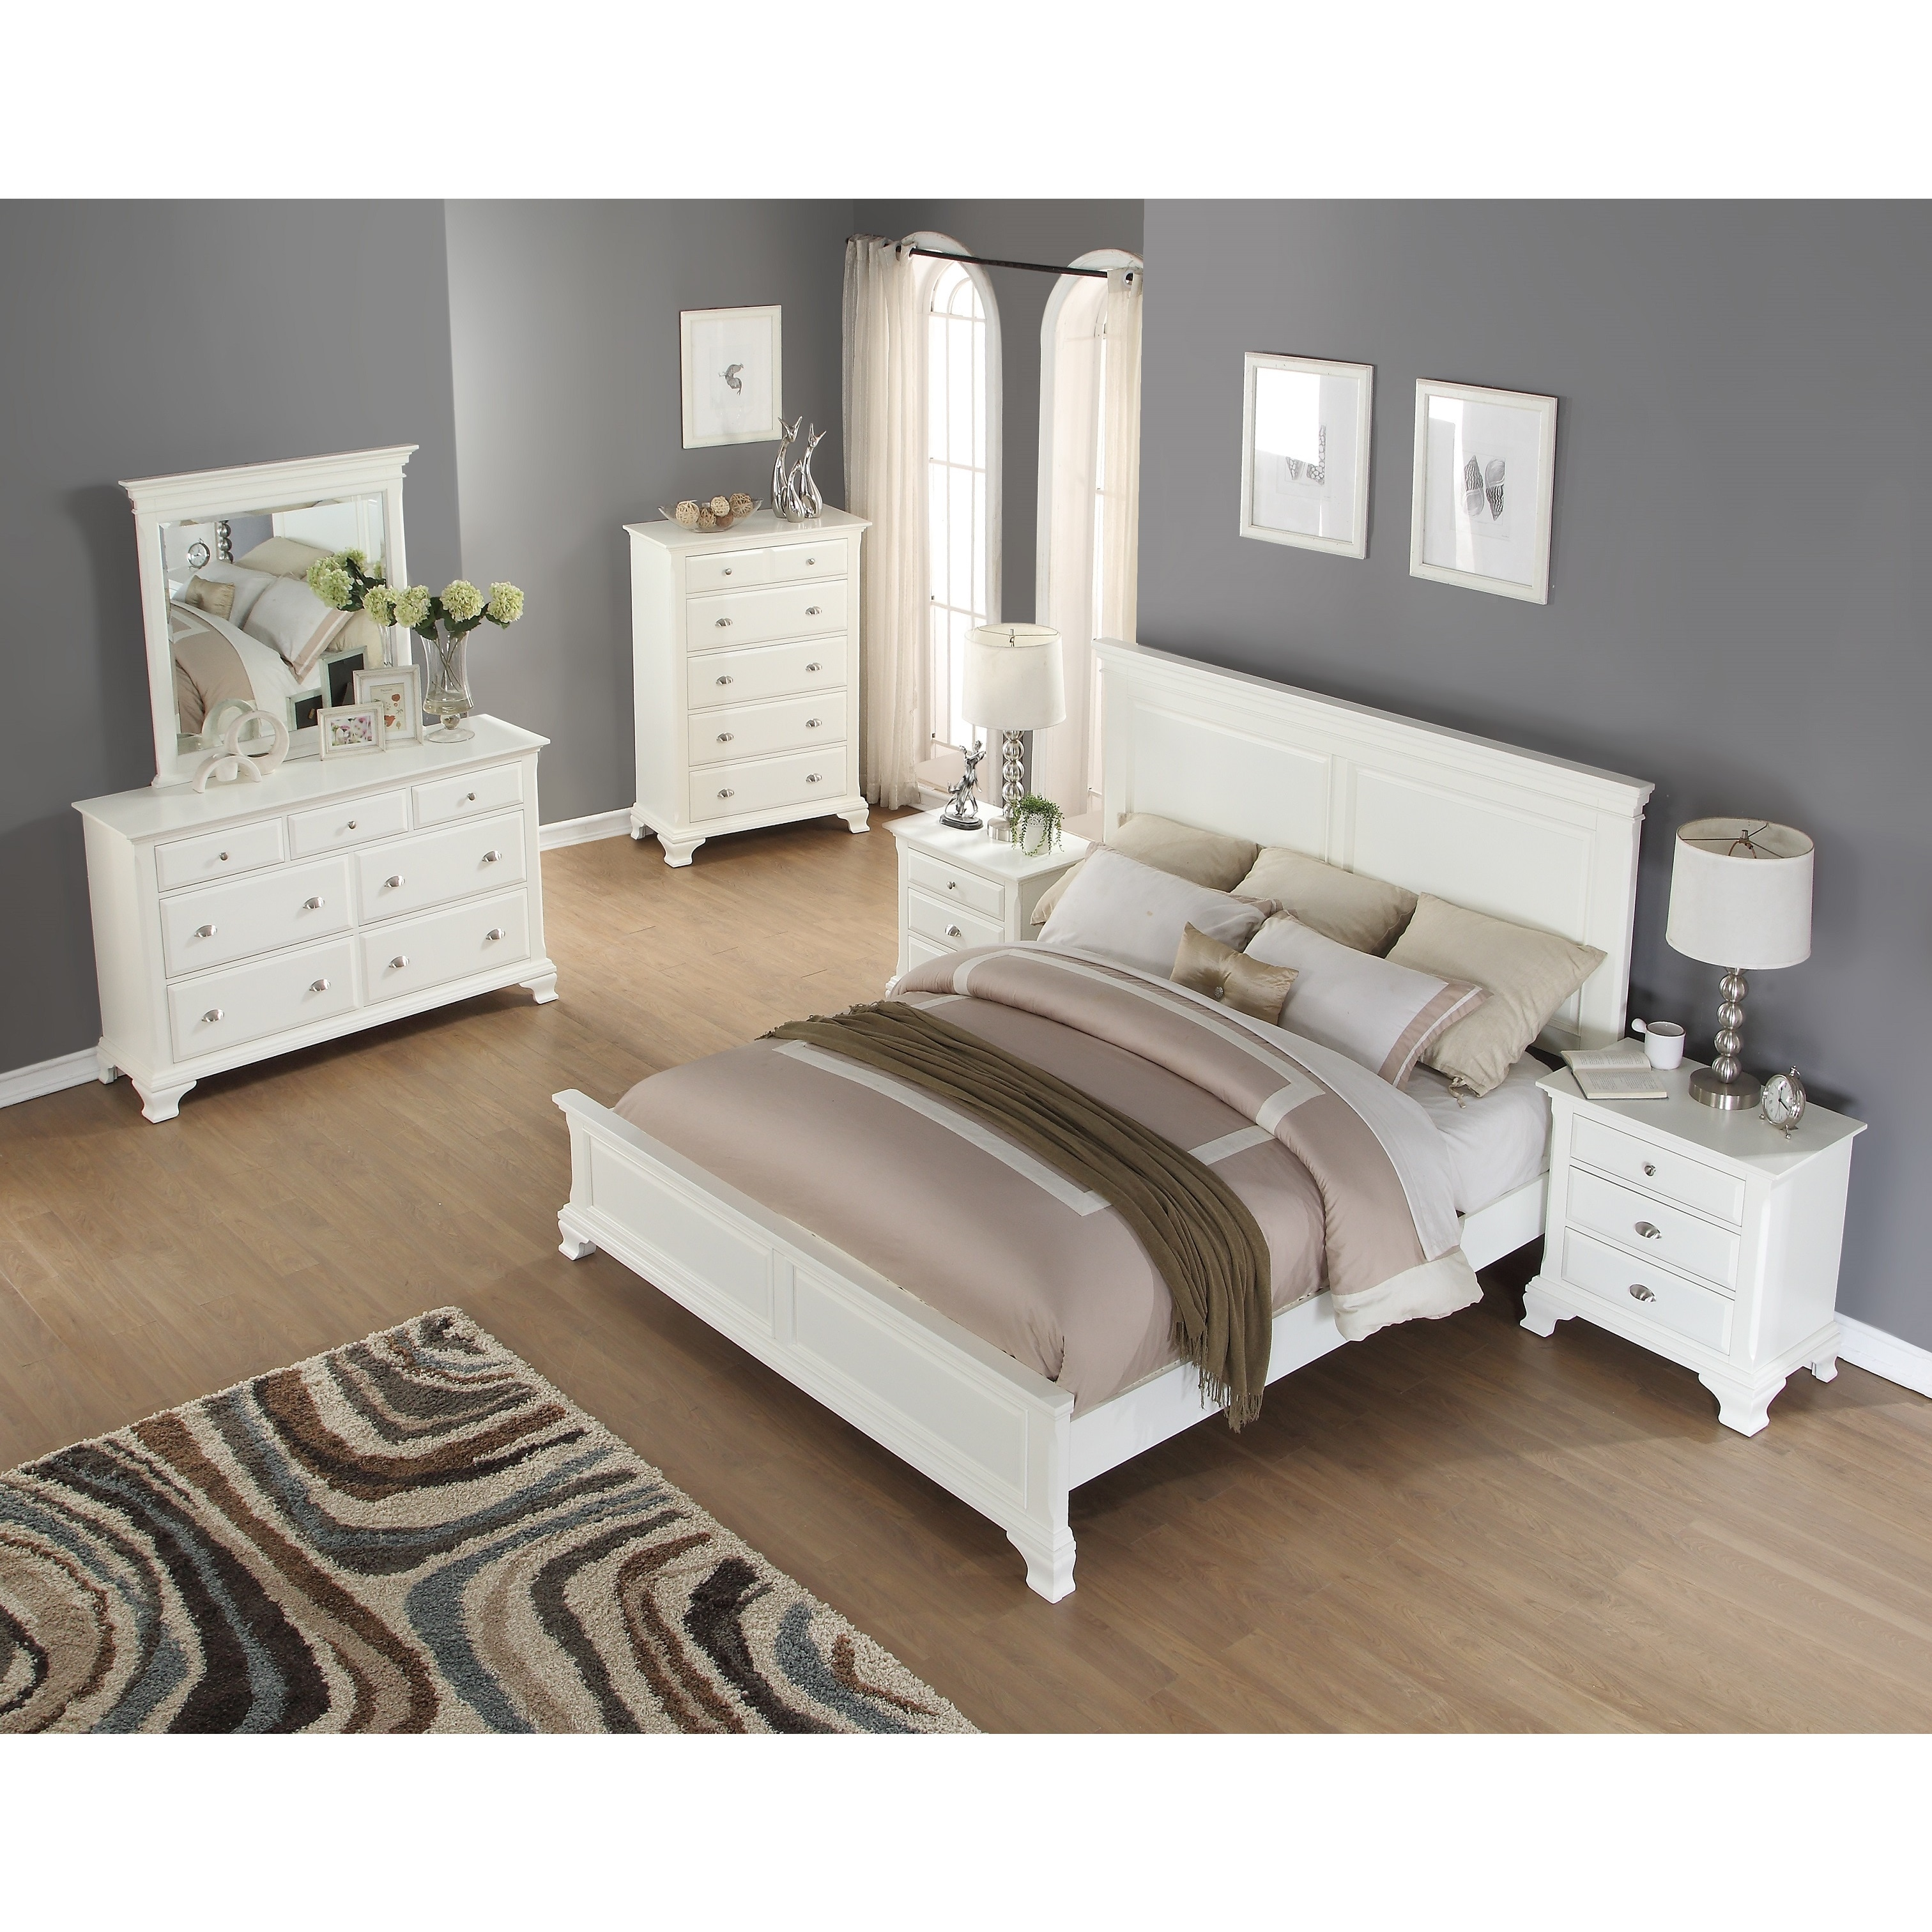 Shop Laveno 012 White Wood Bedroom Furniture Set Includes Queen Bed